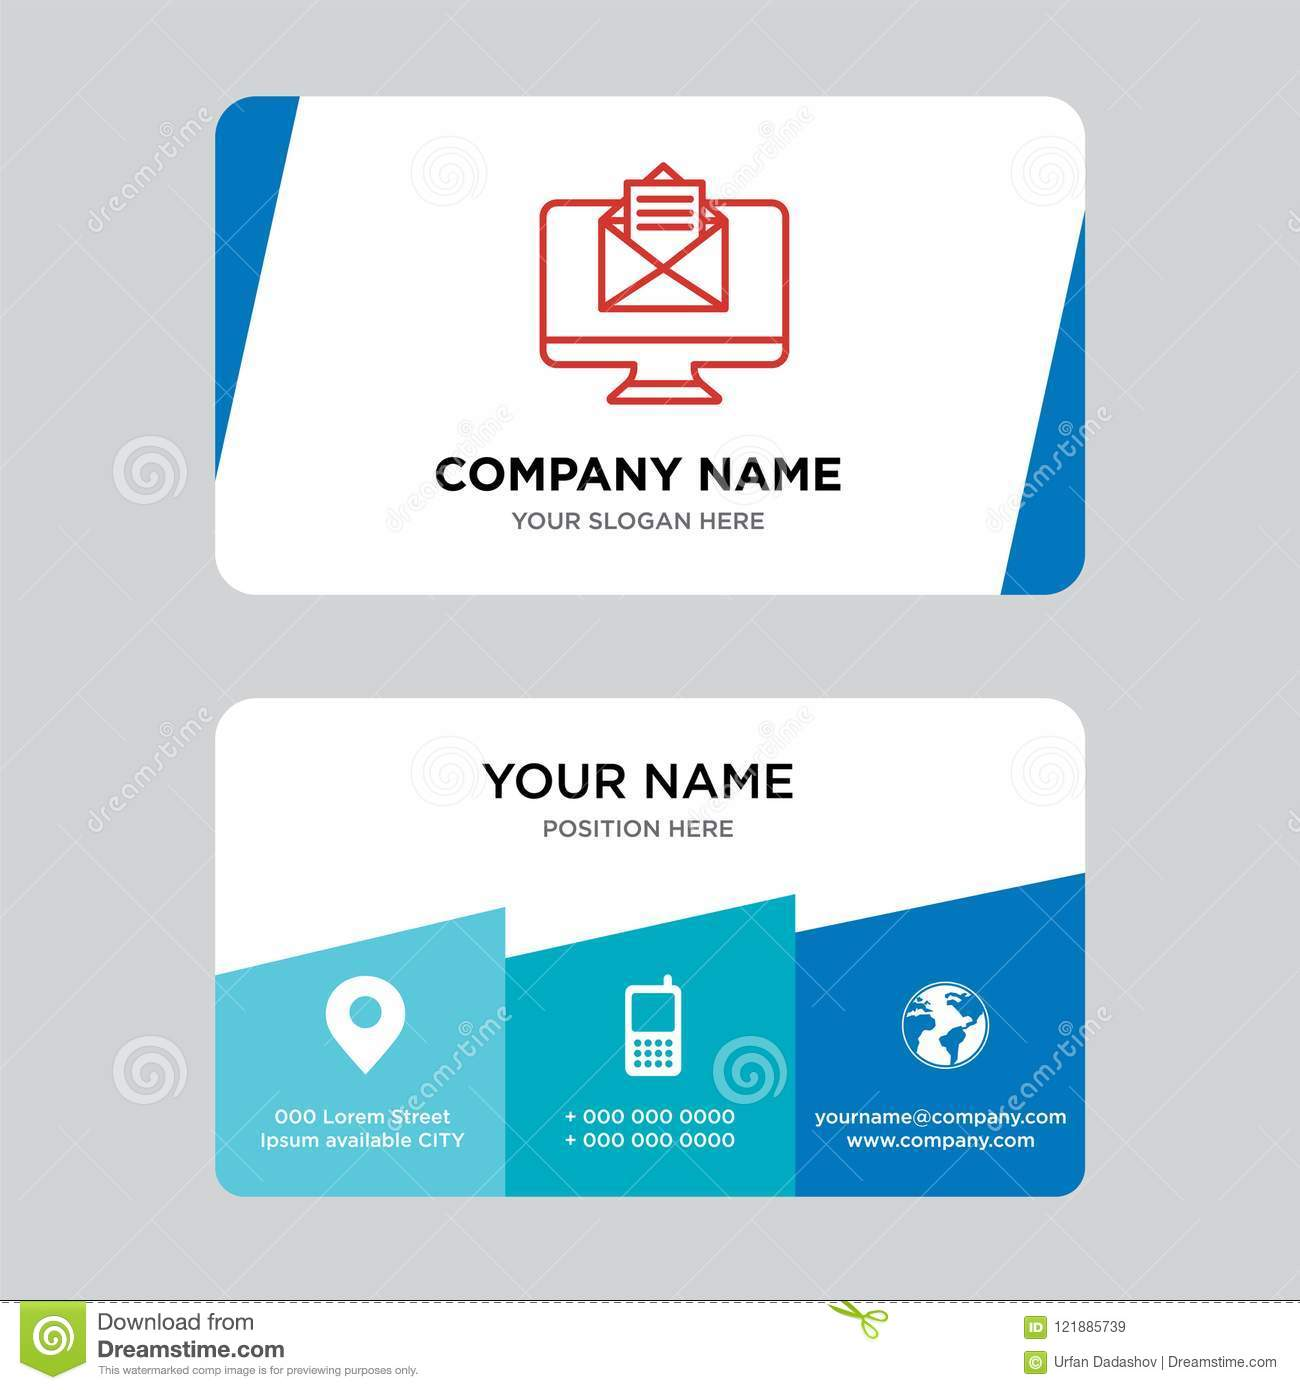 Email Business Card Design Template Visiting For Your Company